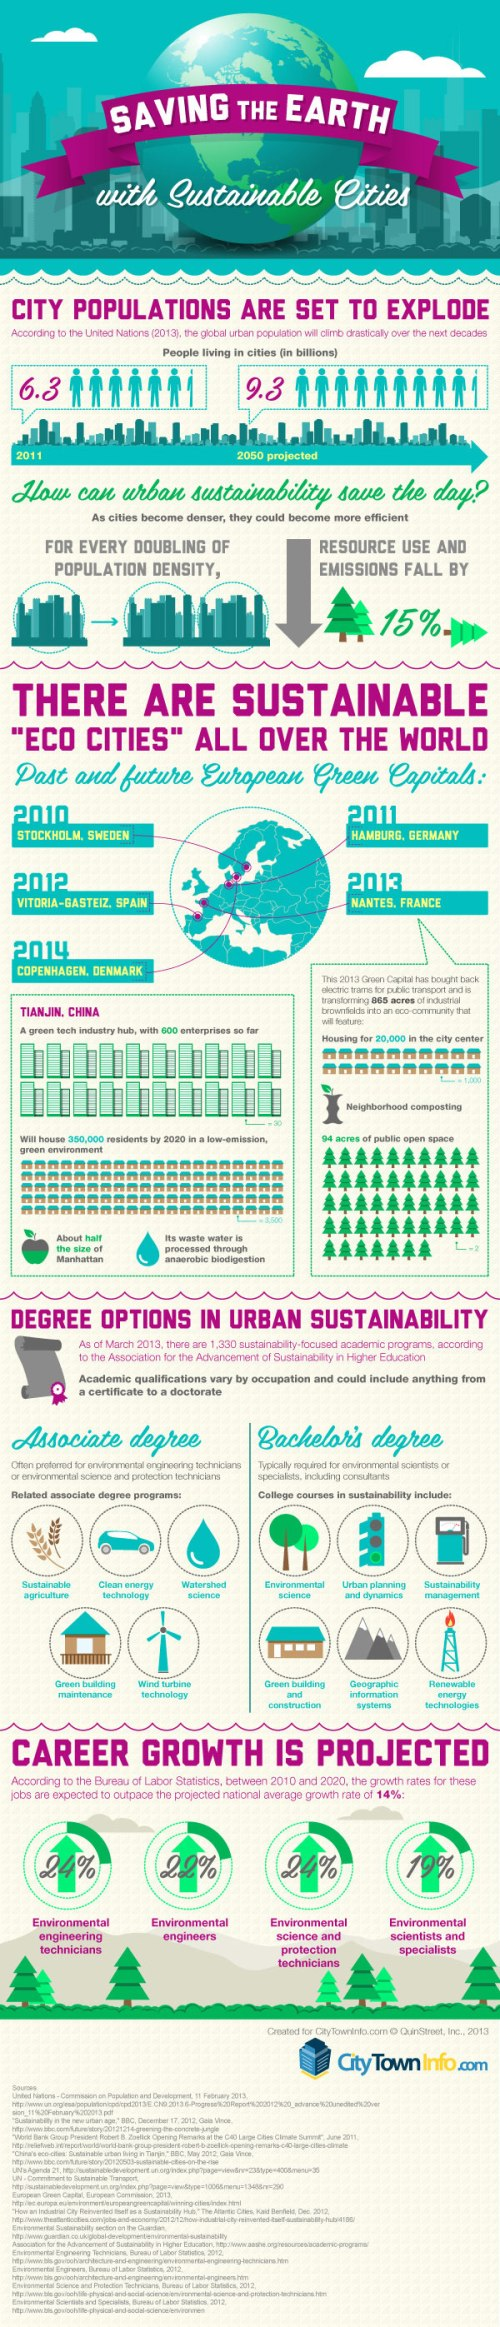 2013-04-xx_citytowninfo_infographic_urban_sustainability